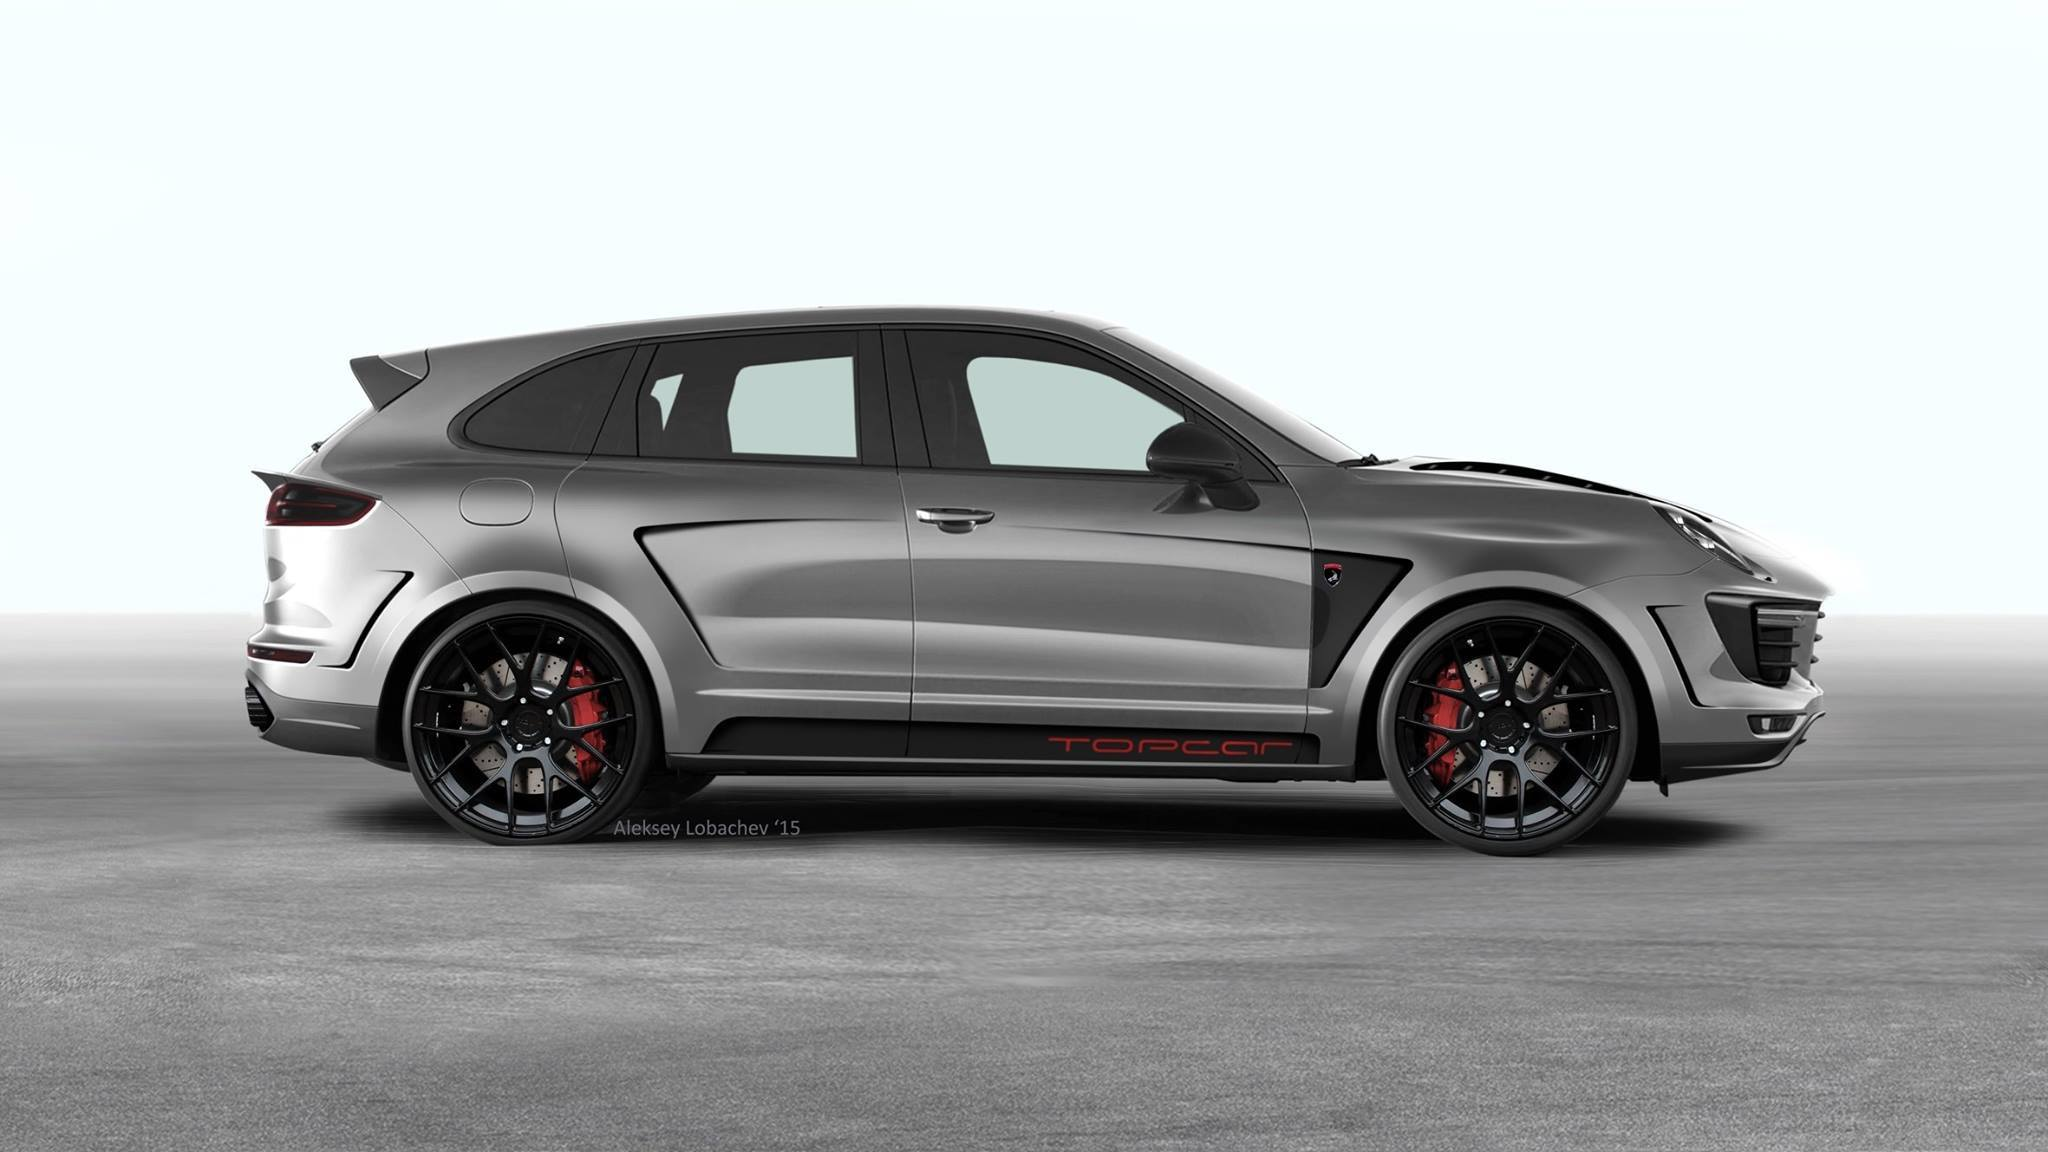 russian porsche cayenne tuning project adds 911 headlights and macan taillights autoevolution. Black Bedroom Furniture Sets. Home Design Ideas